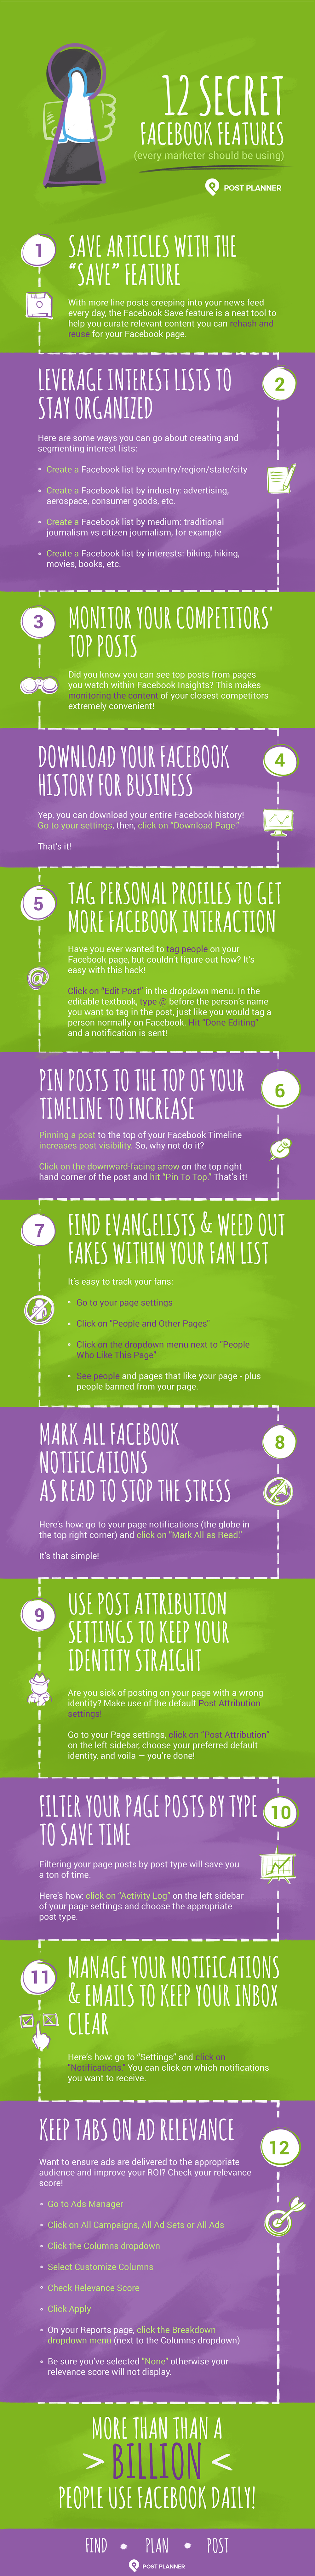 12_secret_facebook_features_every_marketer_should_be_using_2016